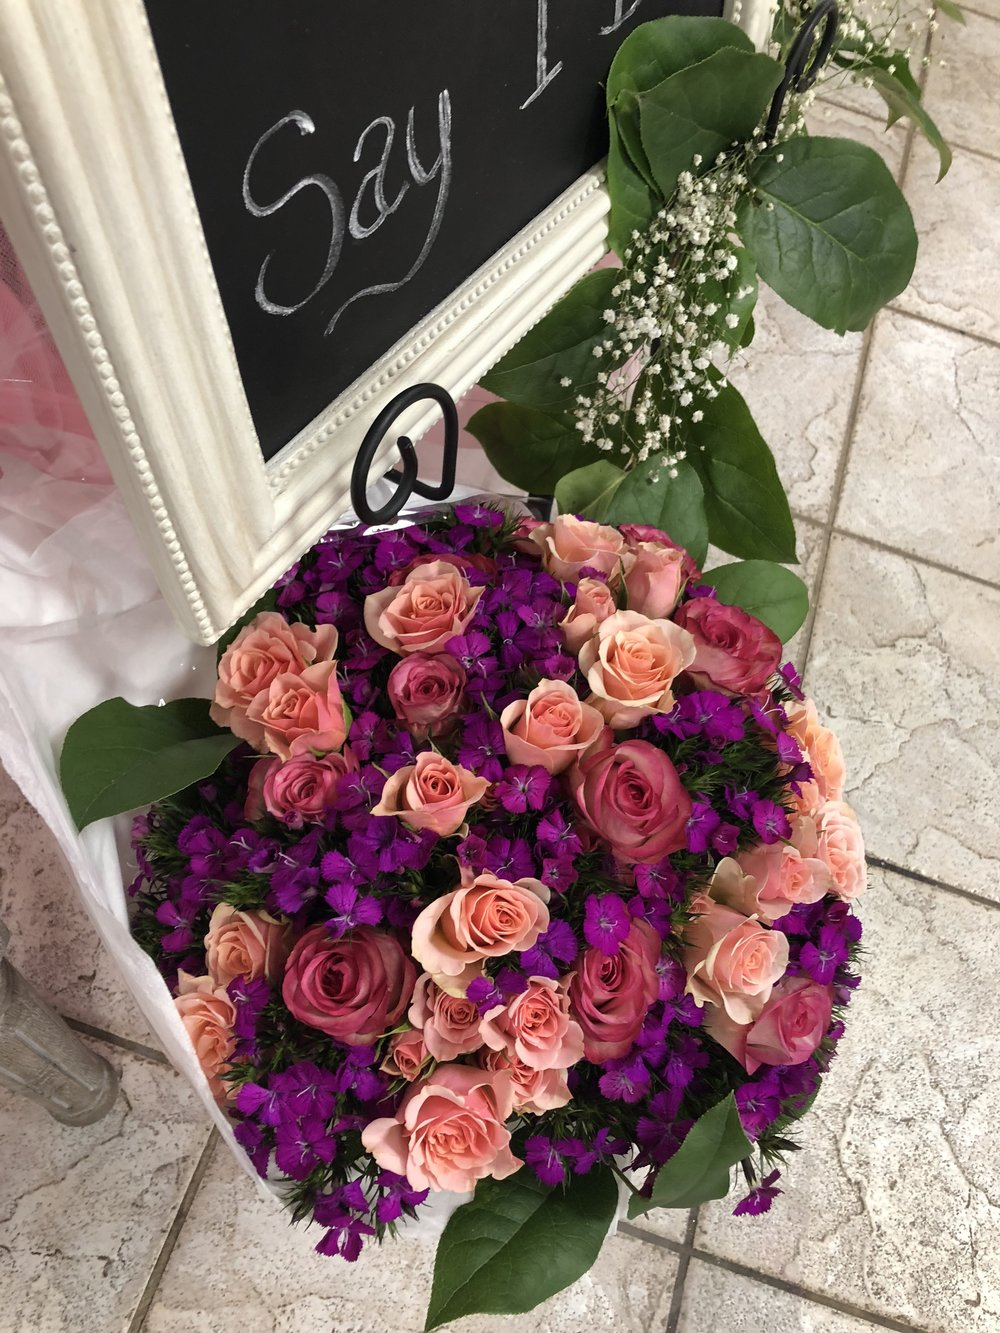 Flowers from her future Husband